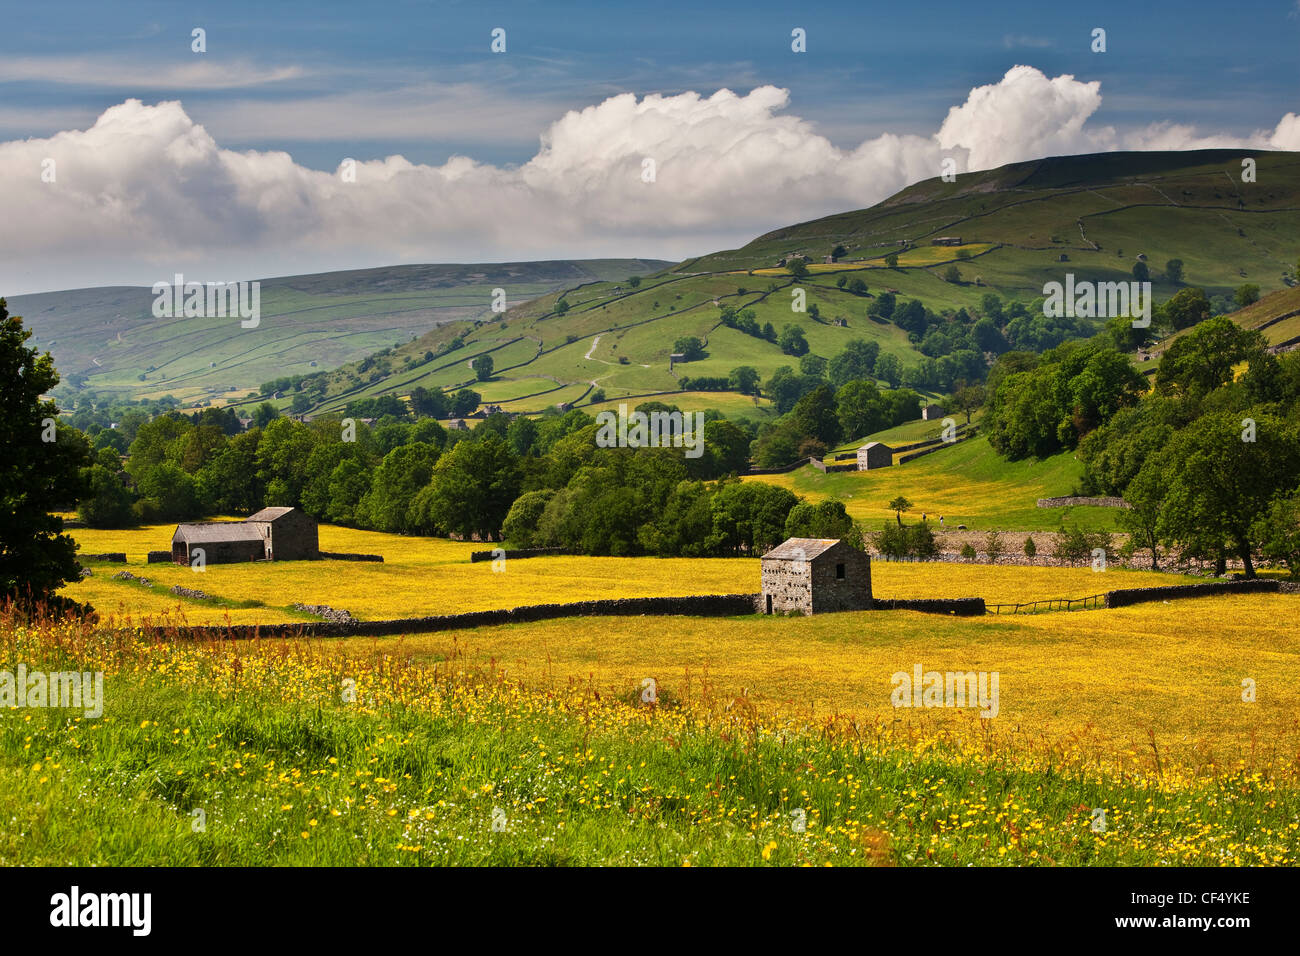 Stone barns in wild flower meadows near Muker, Swaledale, Yorkshire Dales National Park. - Stock Image